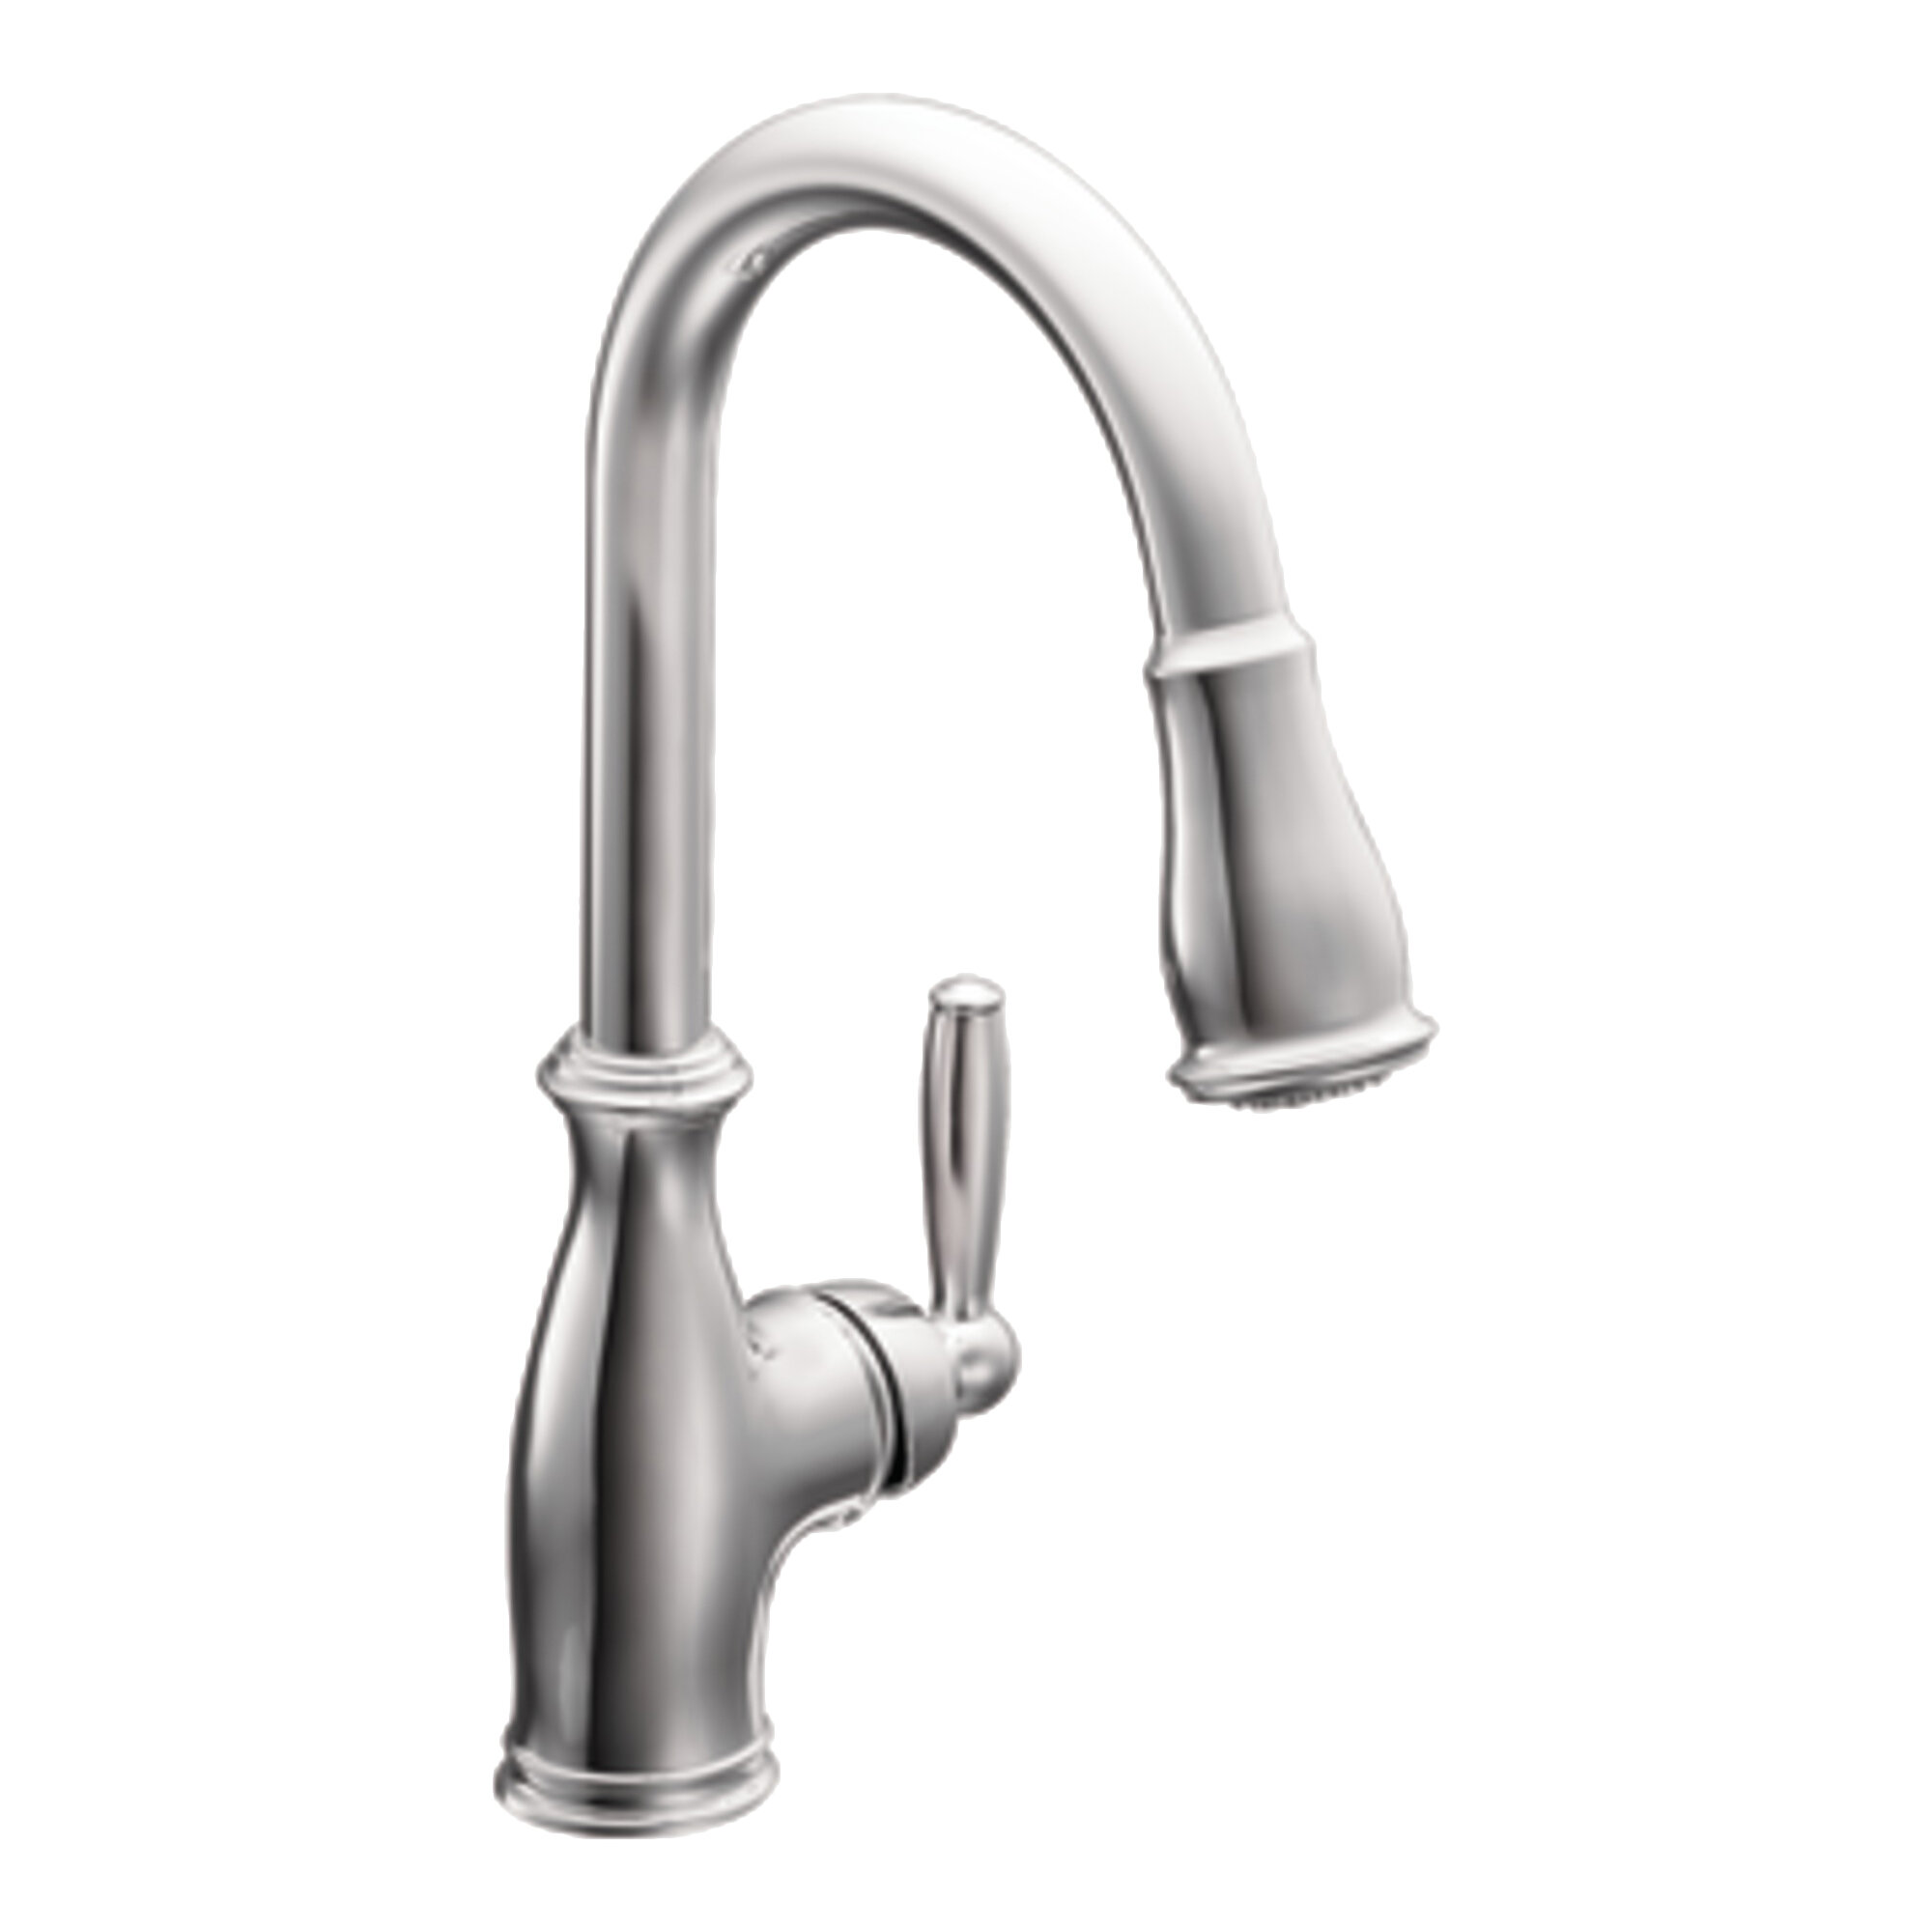 Moen Brantford Pull Down Touch Single Handle Kitchen Faucet with ...